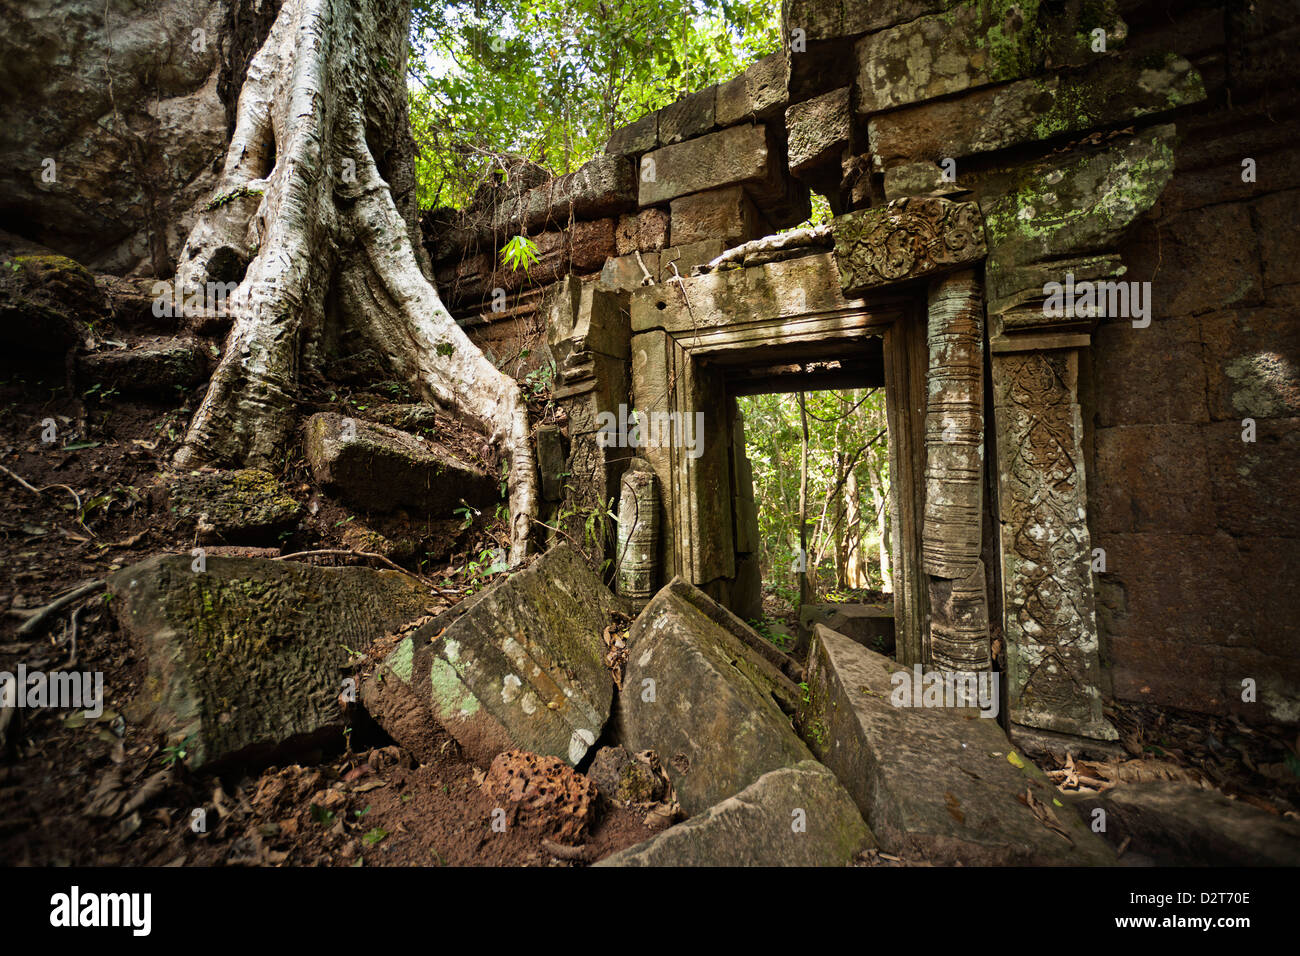 Gateway ruins, Angkor, UNESCO World Heritage Site, Siem Reap, Cambodia, Indochina, Southeast Asia, Asia - Stock Image